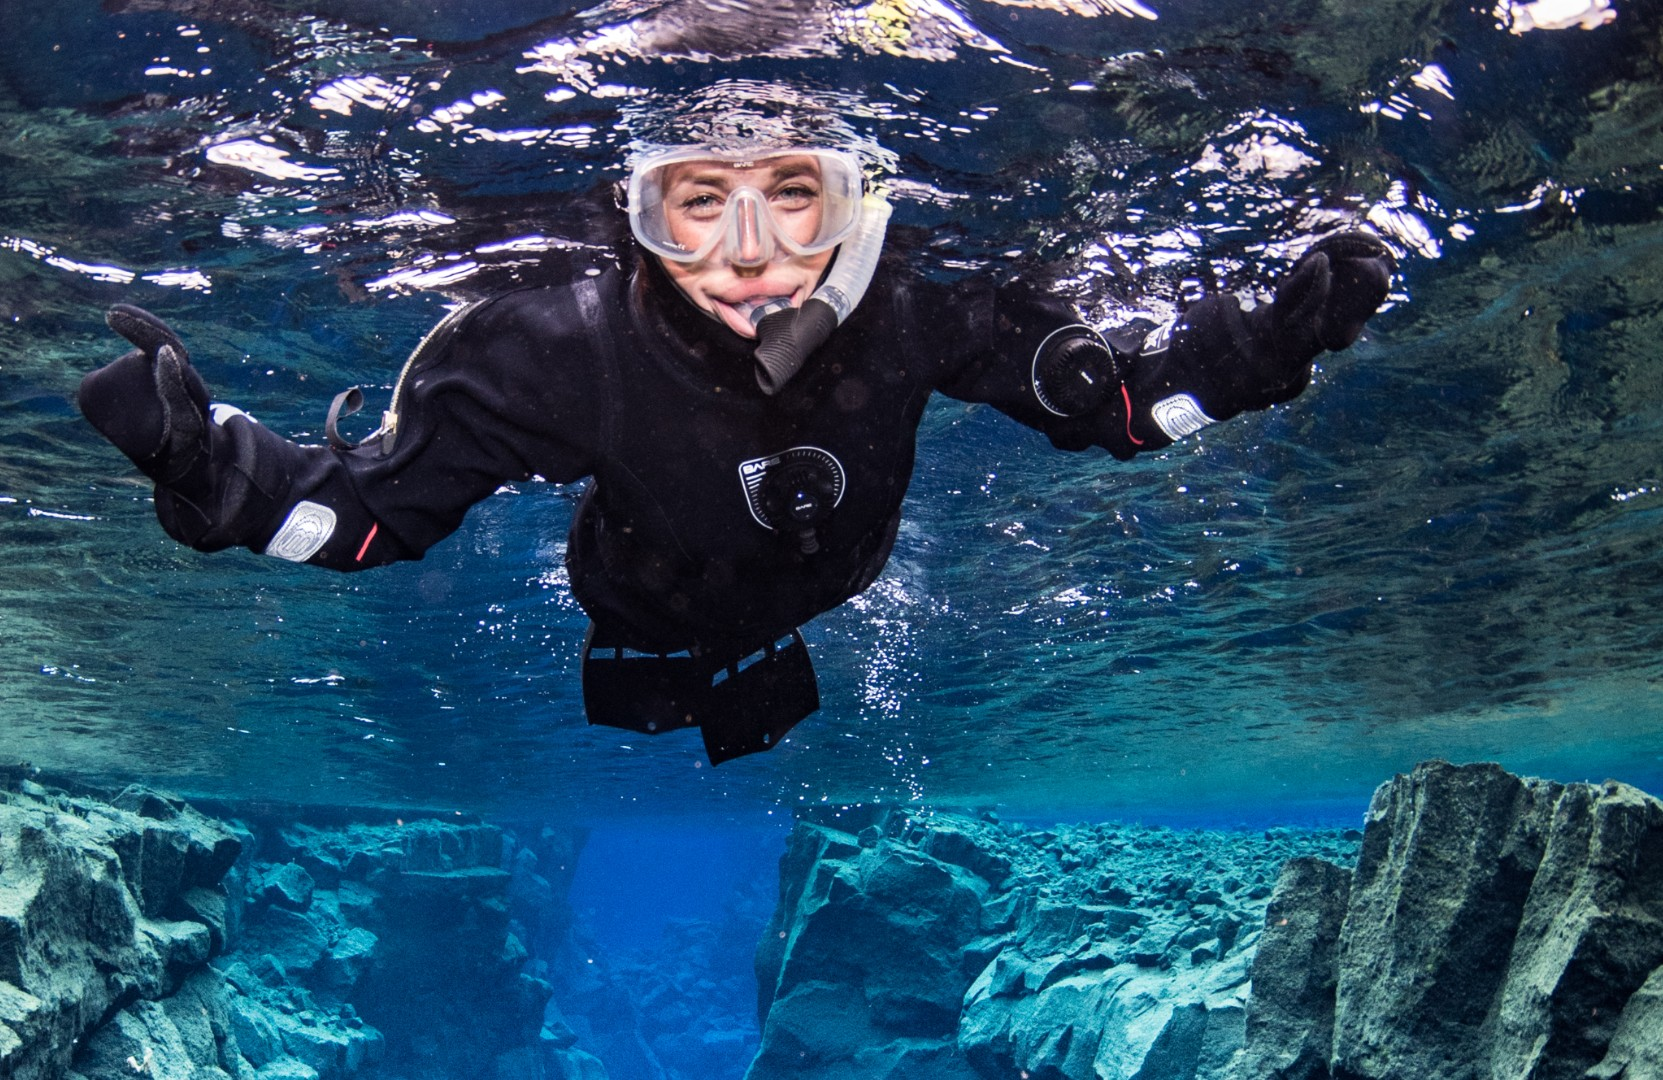 snorkeling-silfra-day-tour-dive.is-anders-nyberg.jpg